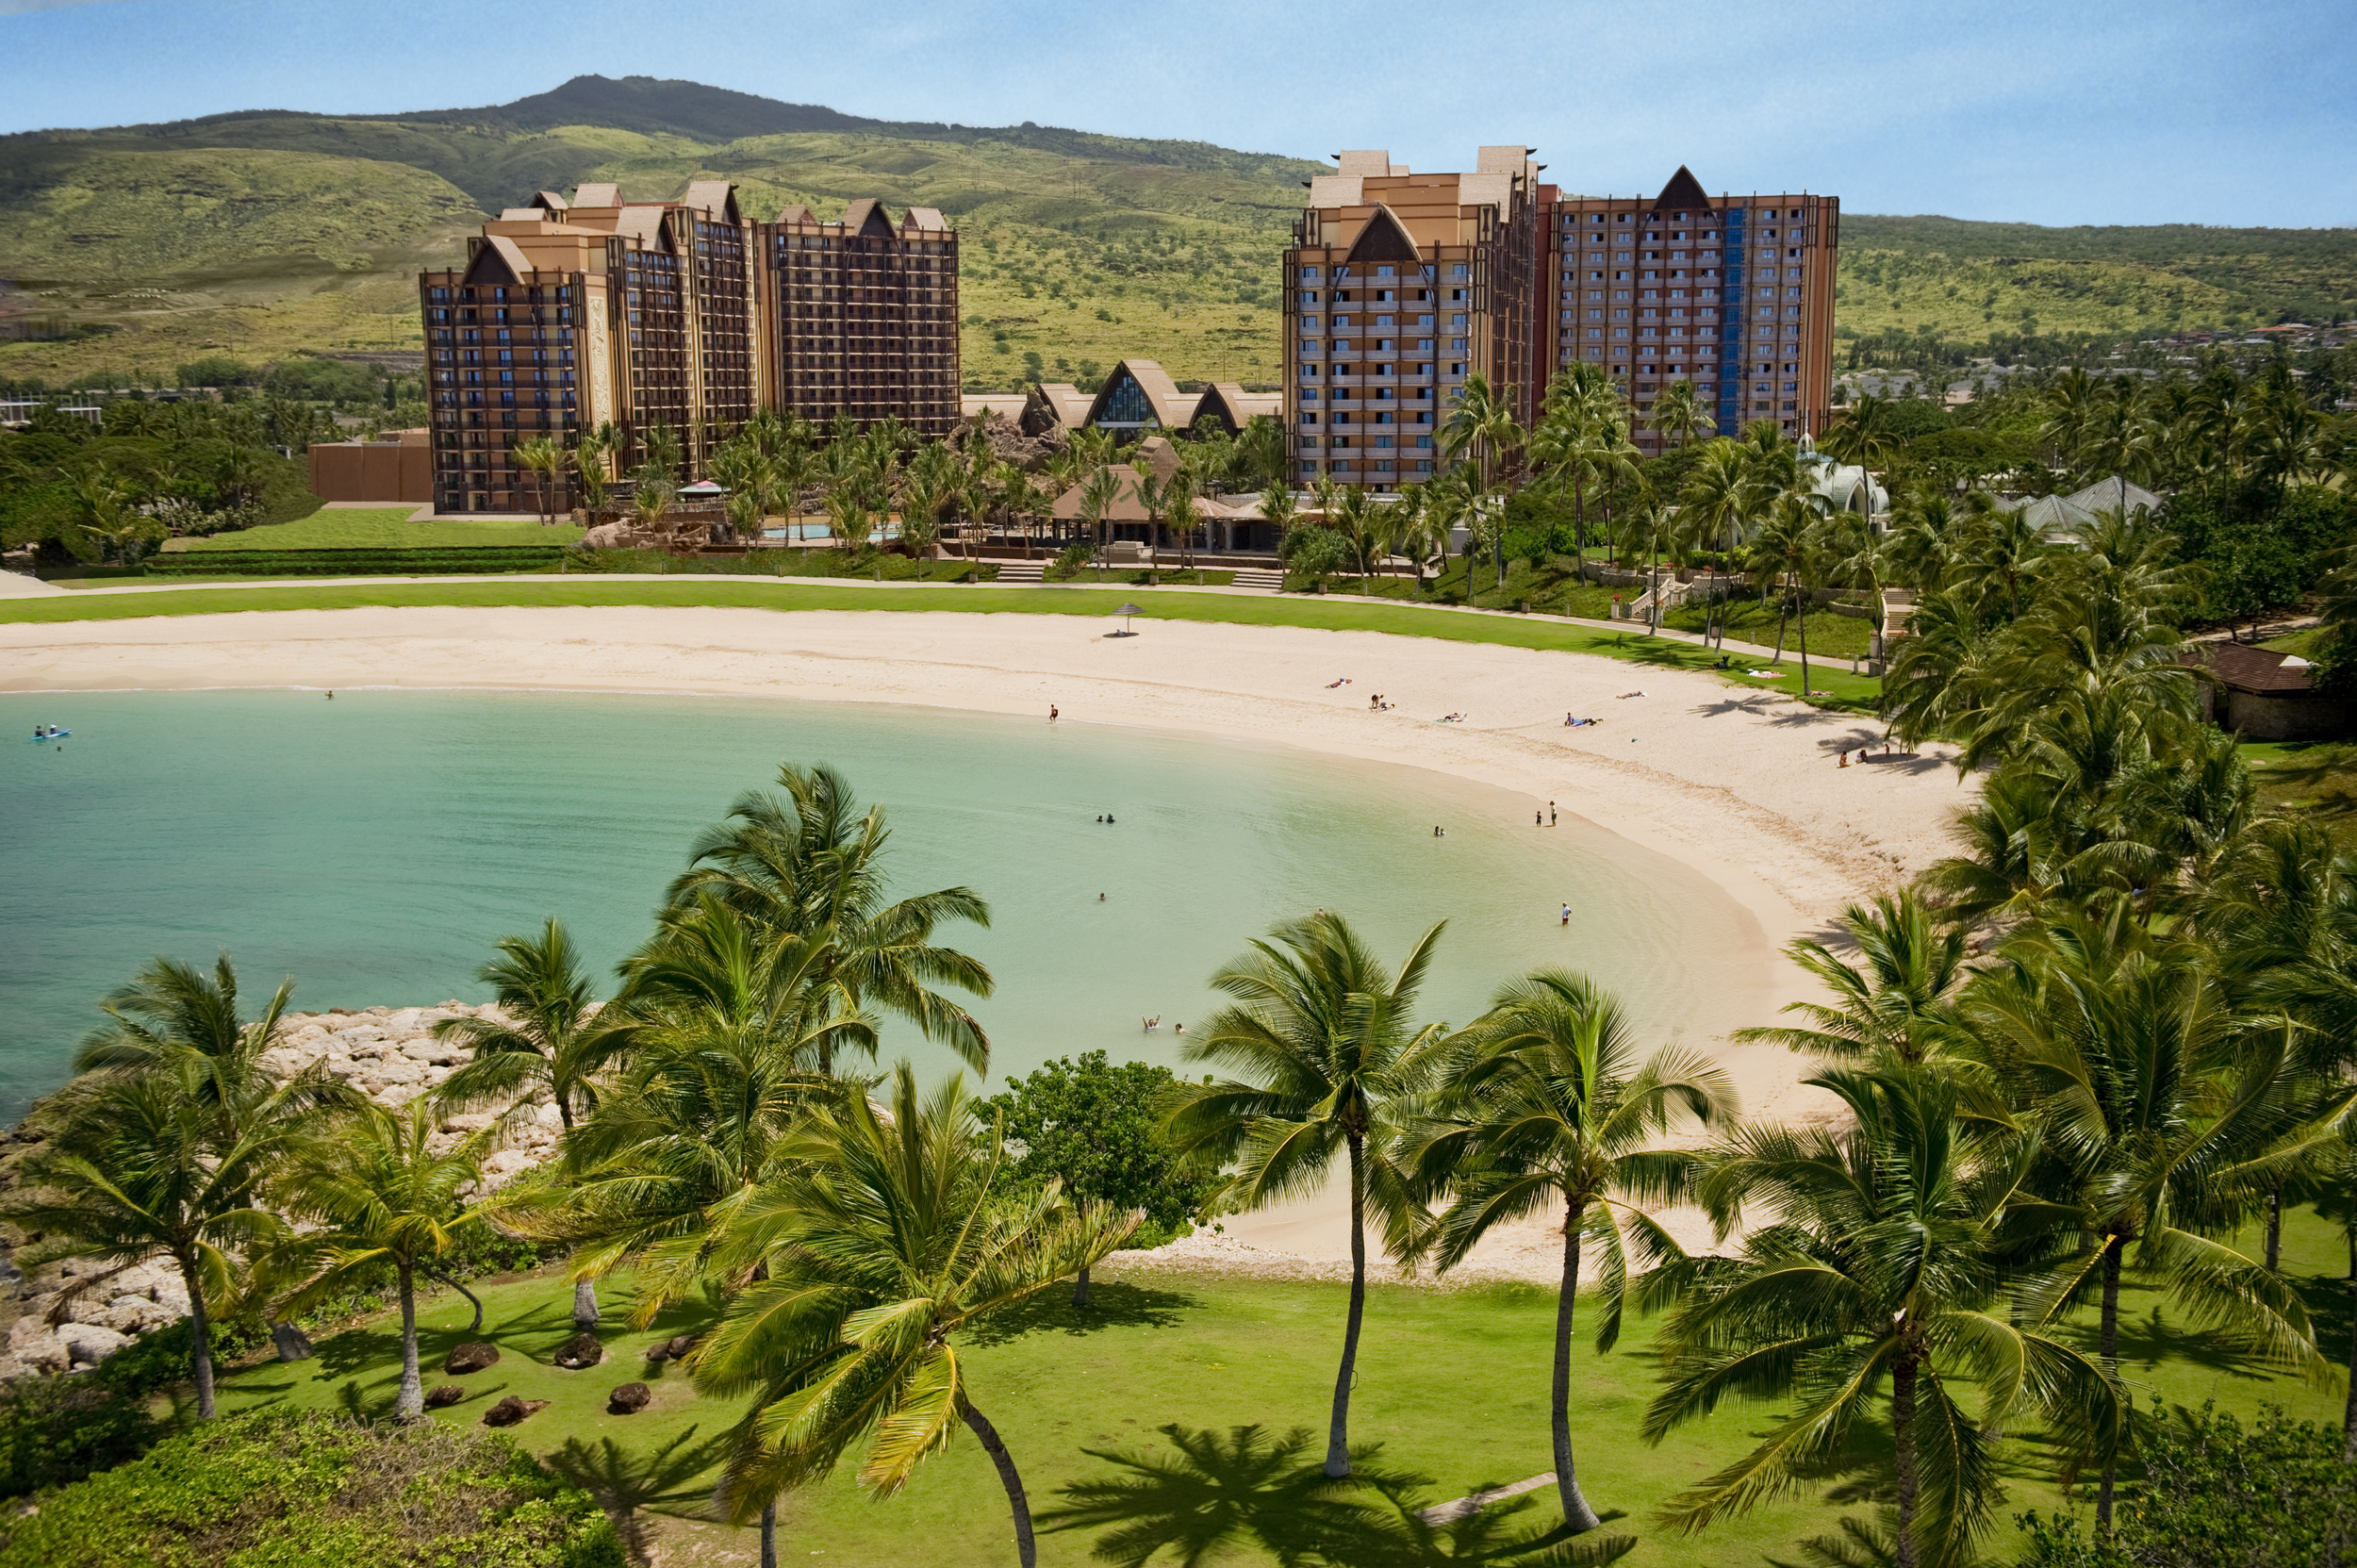 Disney's Aulani Resort & Spa